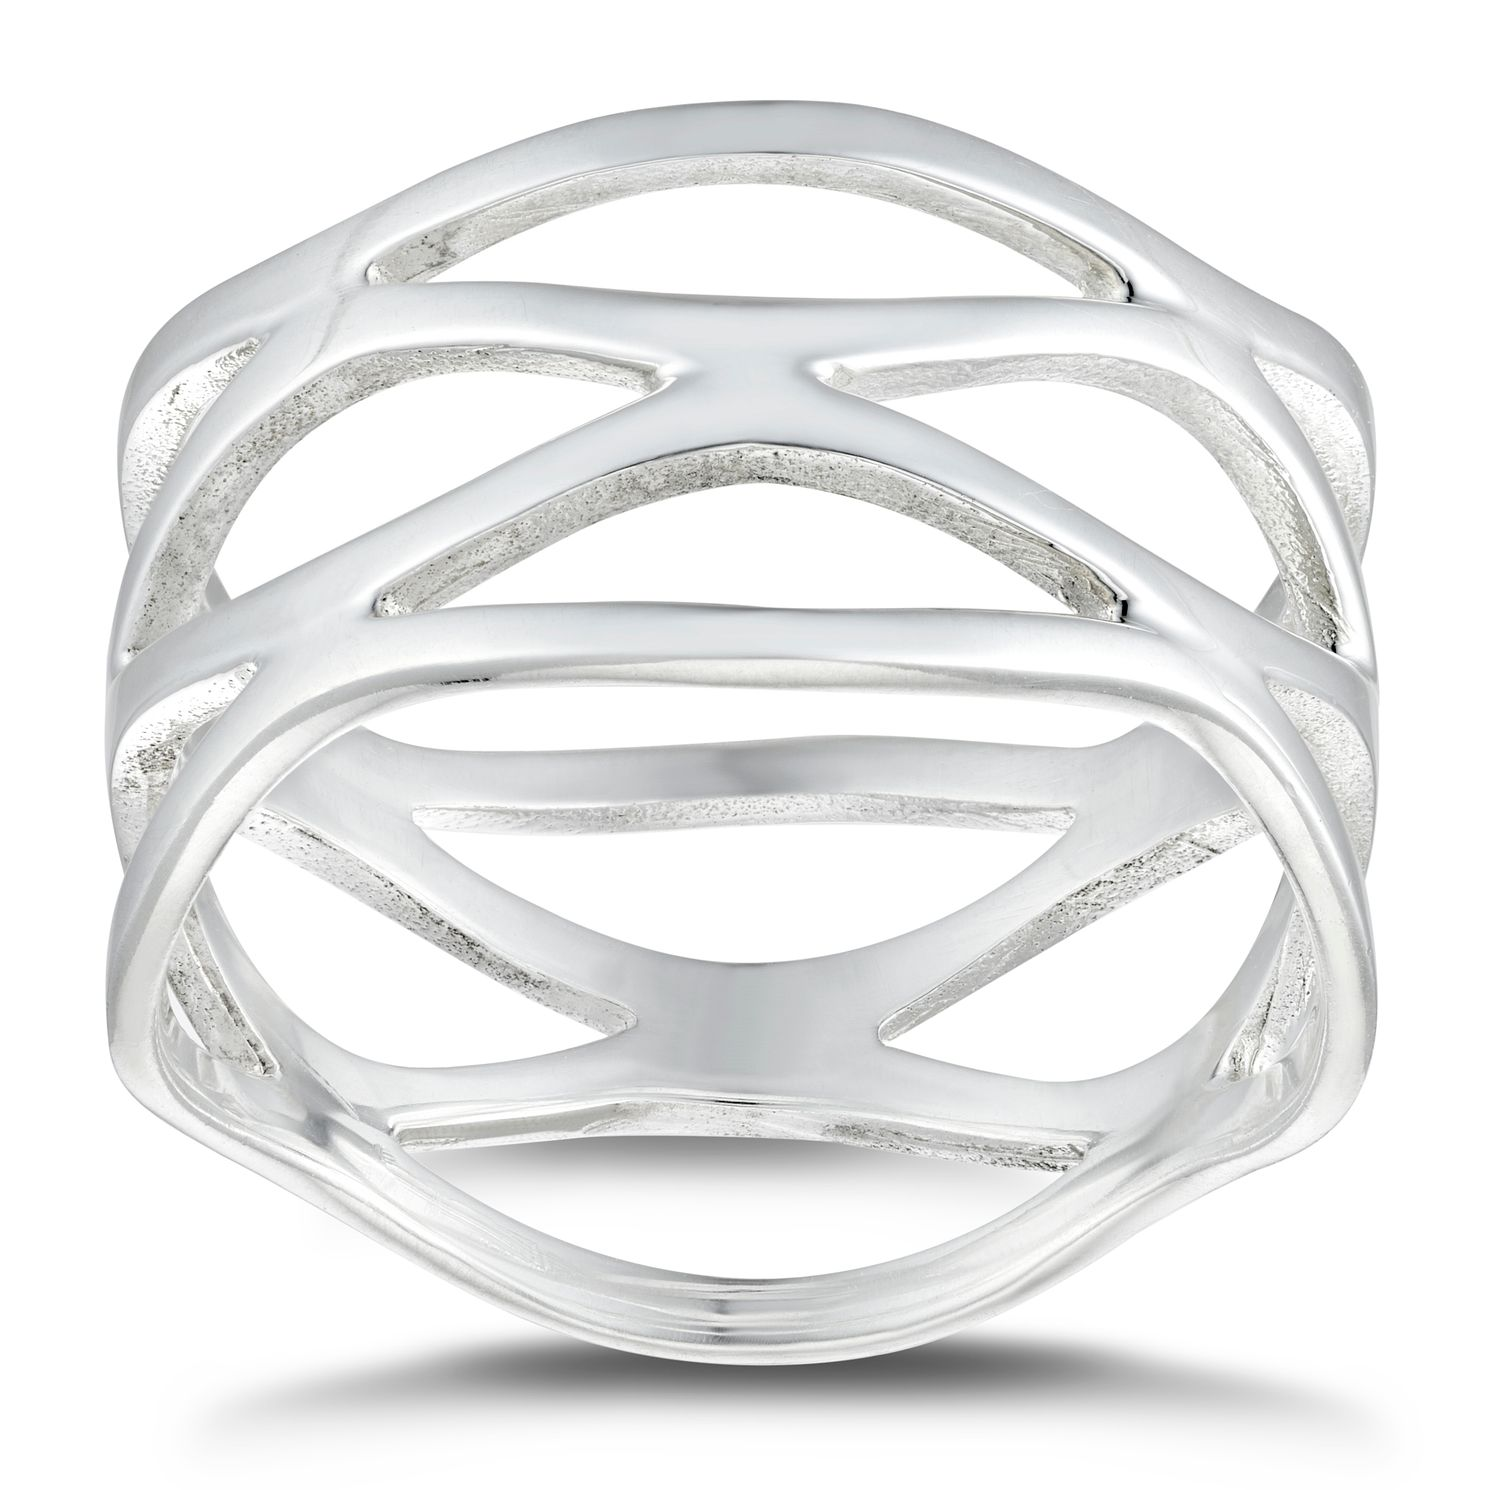 Silver 4-Strand Open Wave Ring - Size L - Product number 4820029